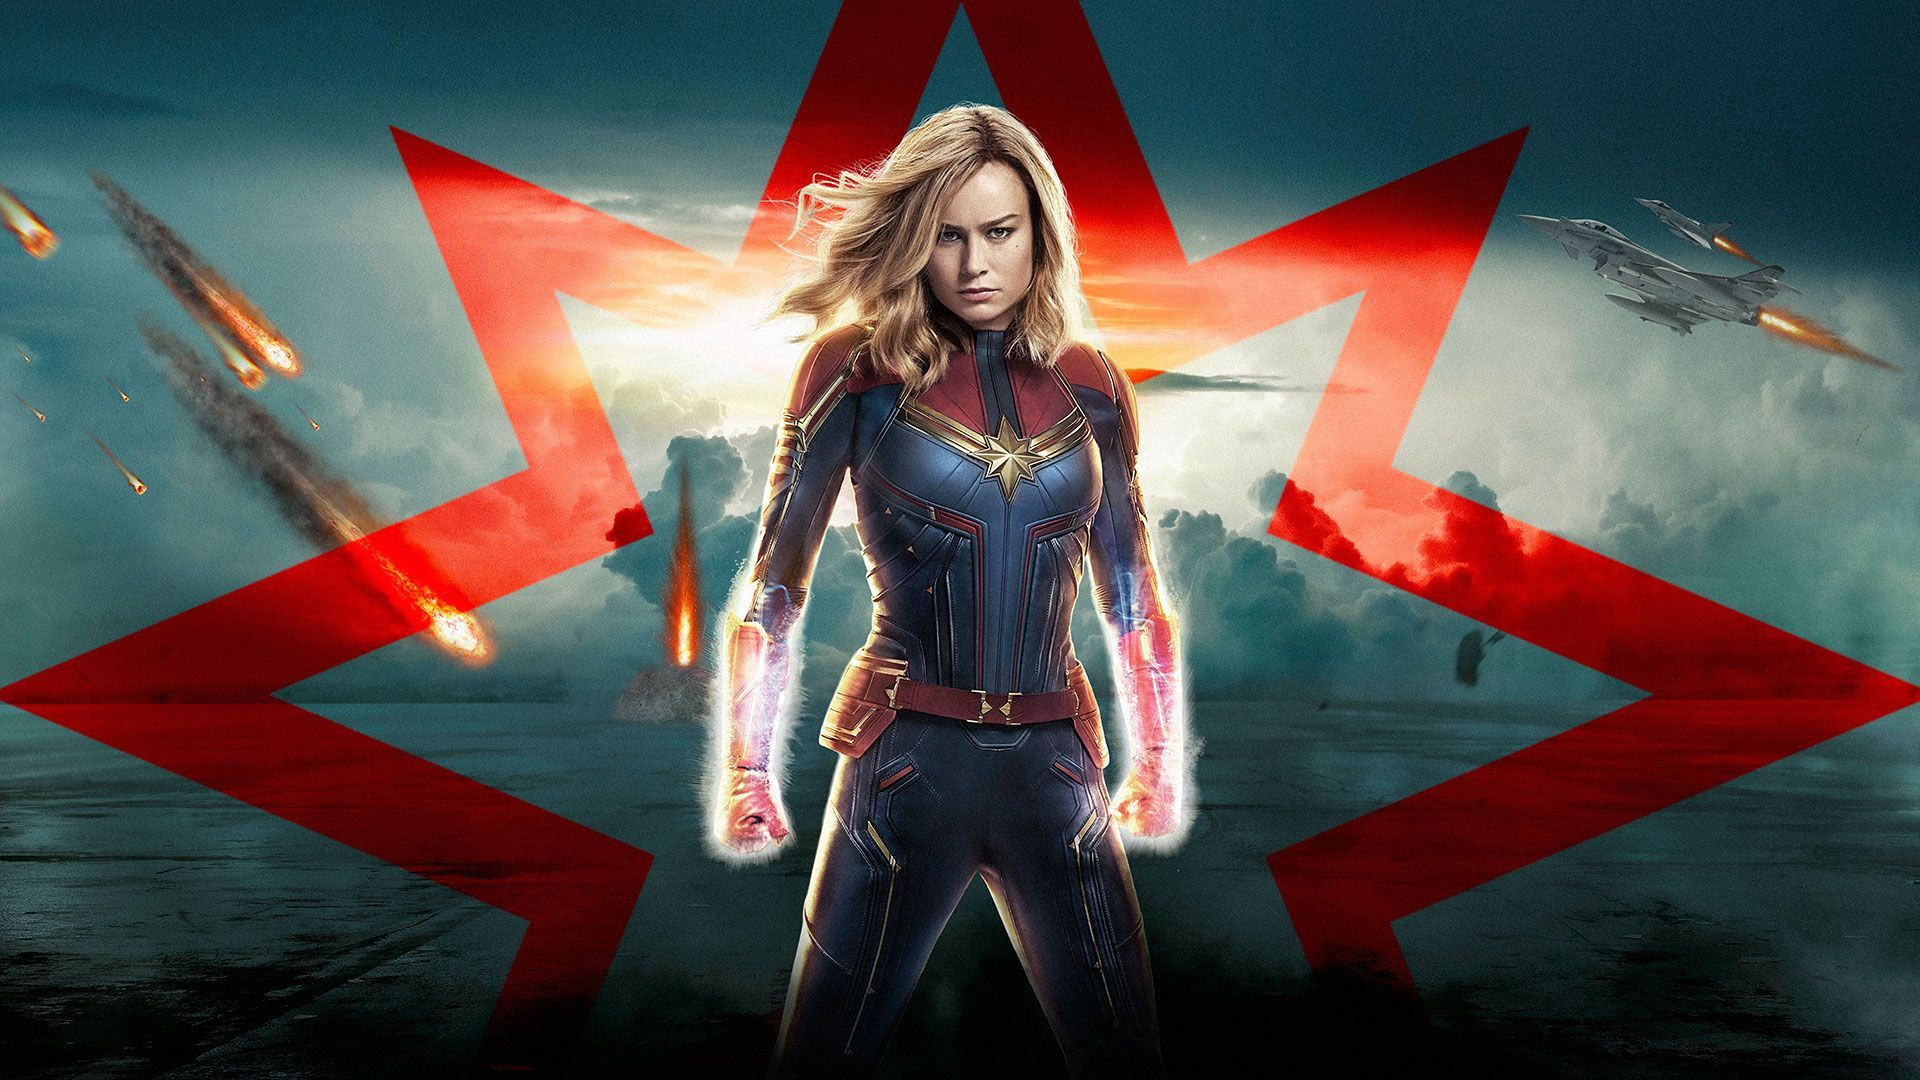 Captain Marvel Wallpaper New Stan Lee Wallpapers Top Free Stan Lee Backgrounds In 2020 Captain Marvel Marvel Tv Marvel Movies